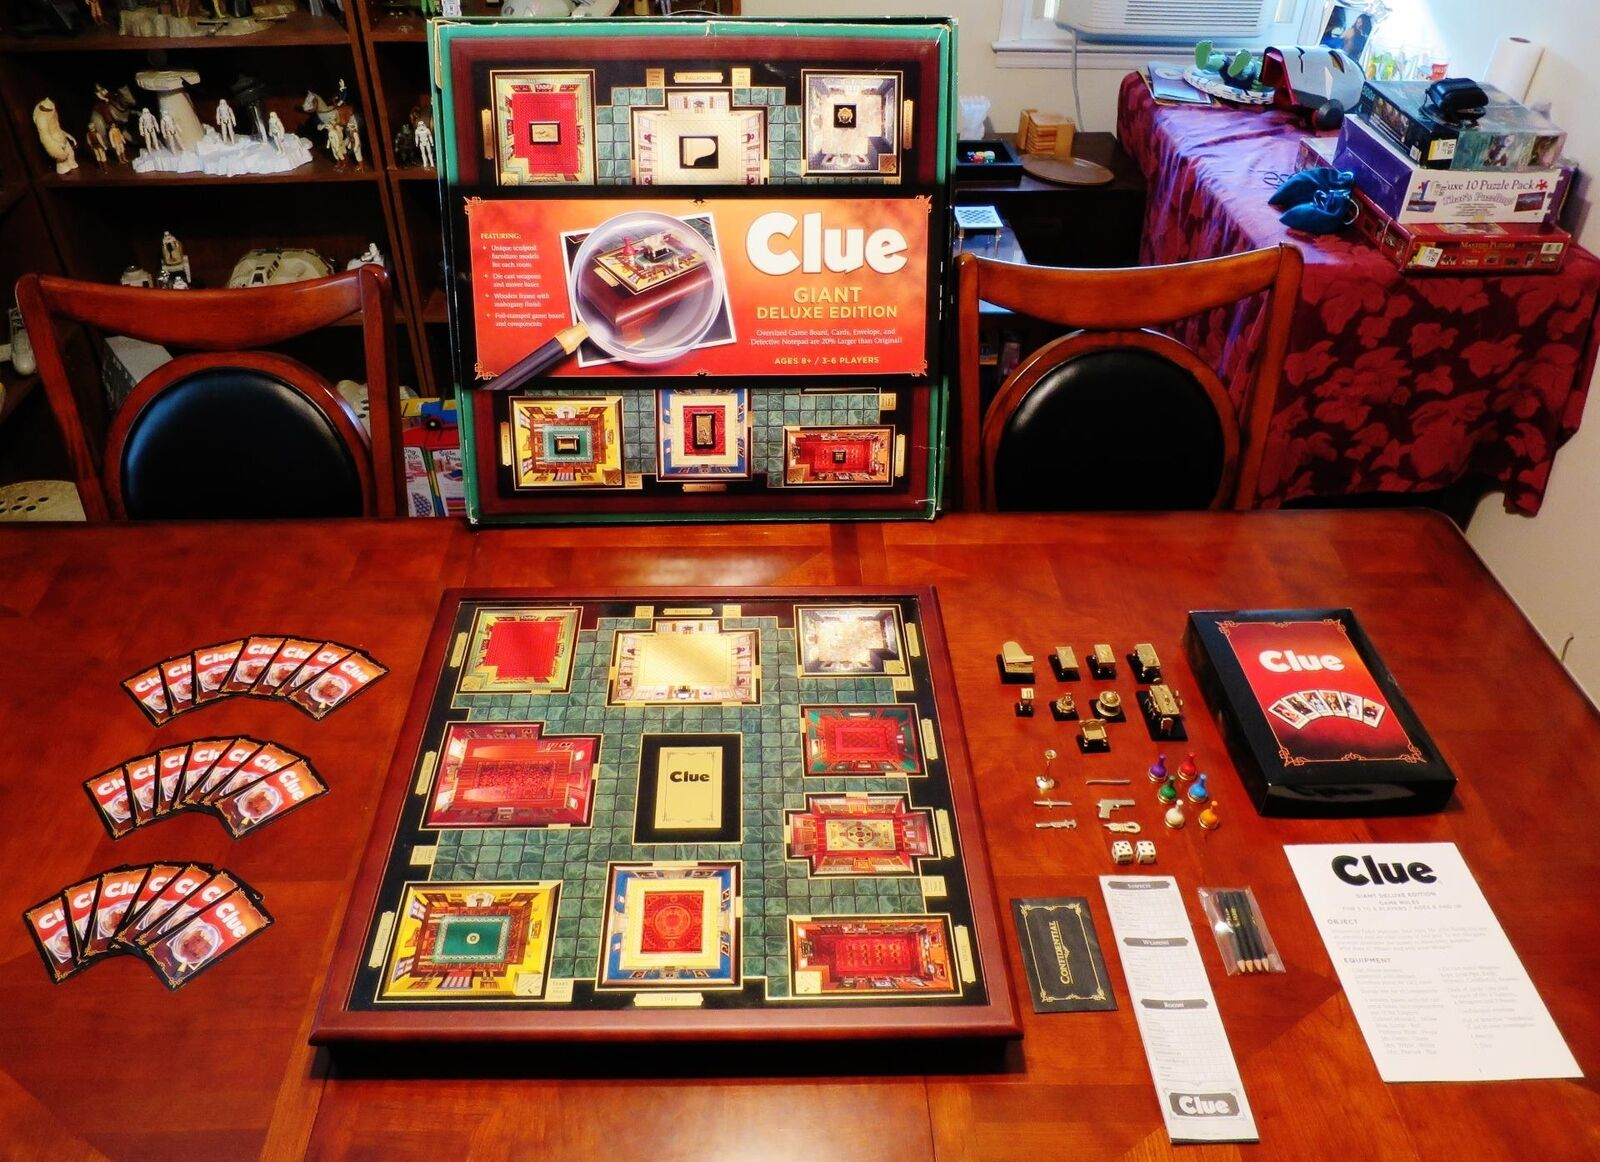 CLUE GIANT DELUXE EDITION BOARD GAME OVERSIZED MAHAGONY FINISH FINISH FINISH WINNING SOLUTIONS 3eecf9